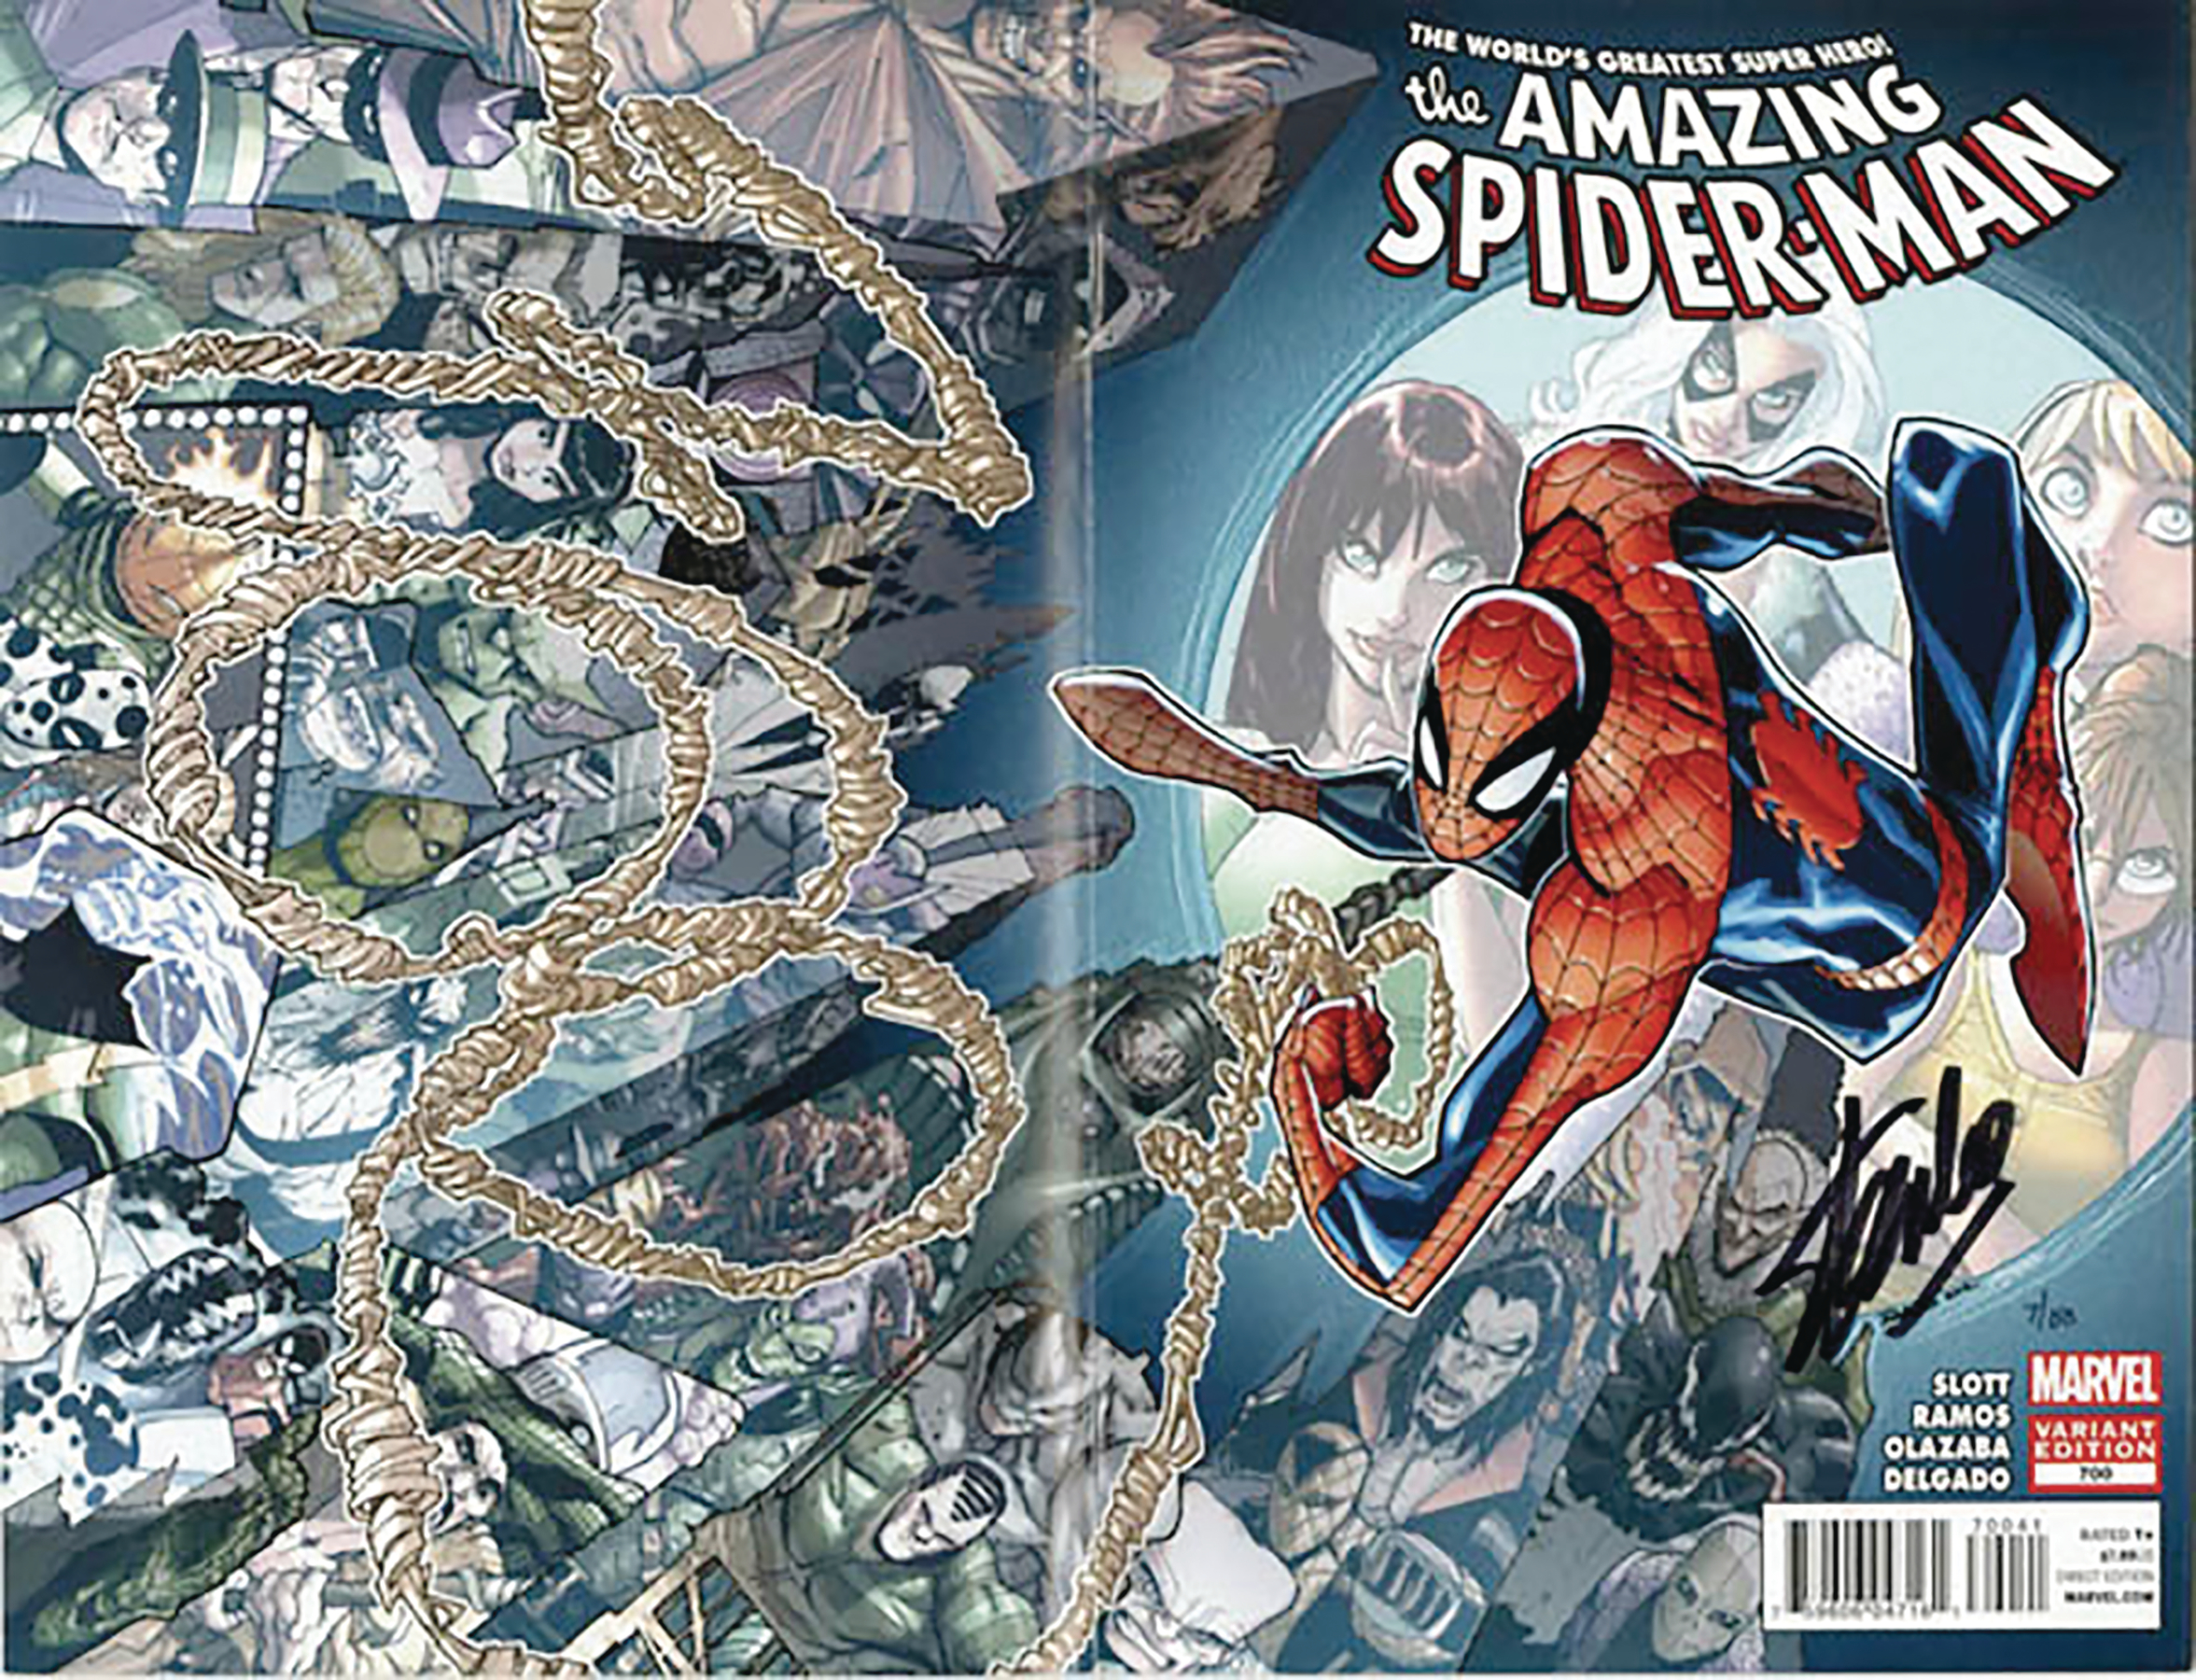 DF AMAZING SPIDER-MAN #700 SGN STAN LEE